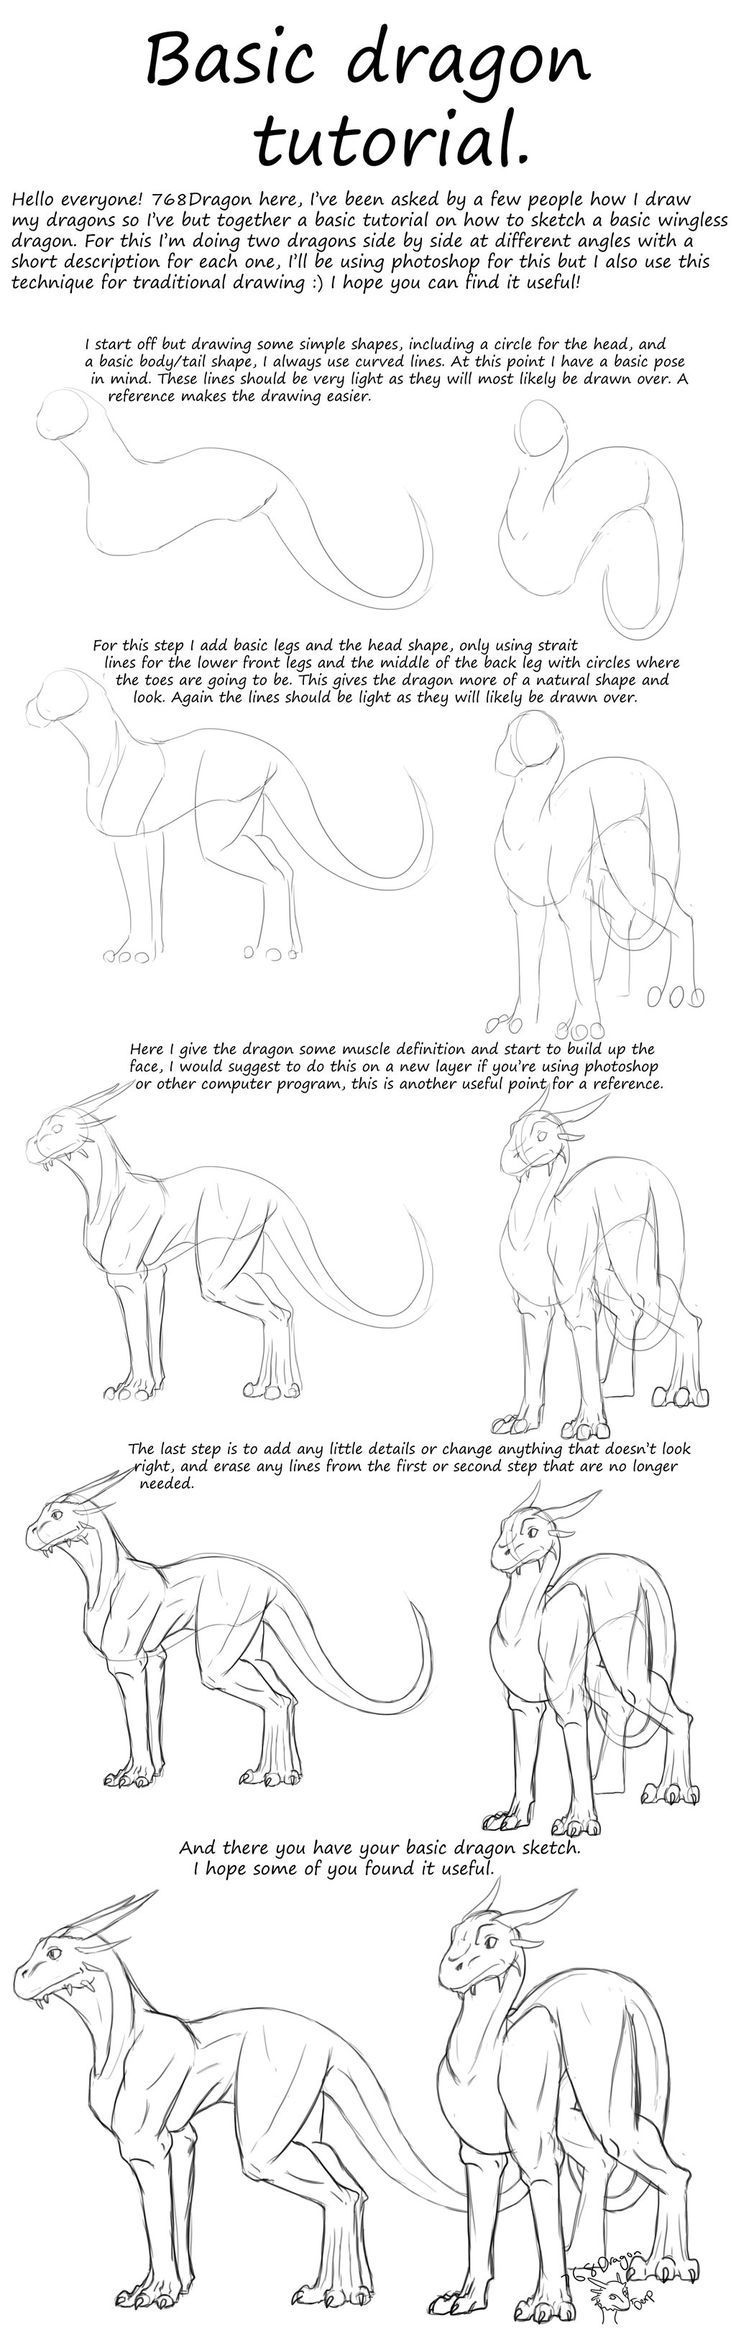 So I've Had Some People Ask Me How I Draw My Dragons, So How To Draw  Dragons In Photoshop